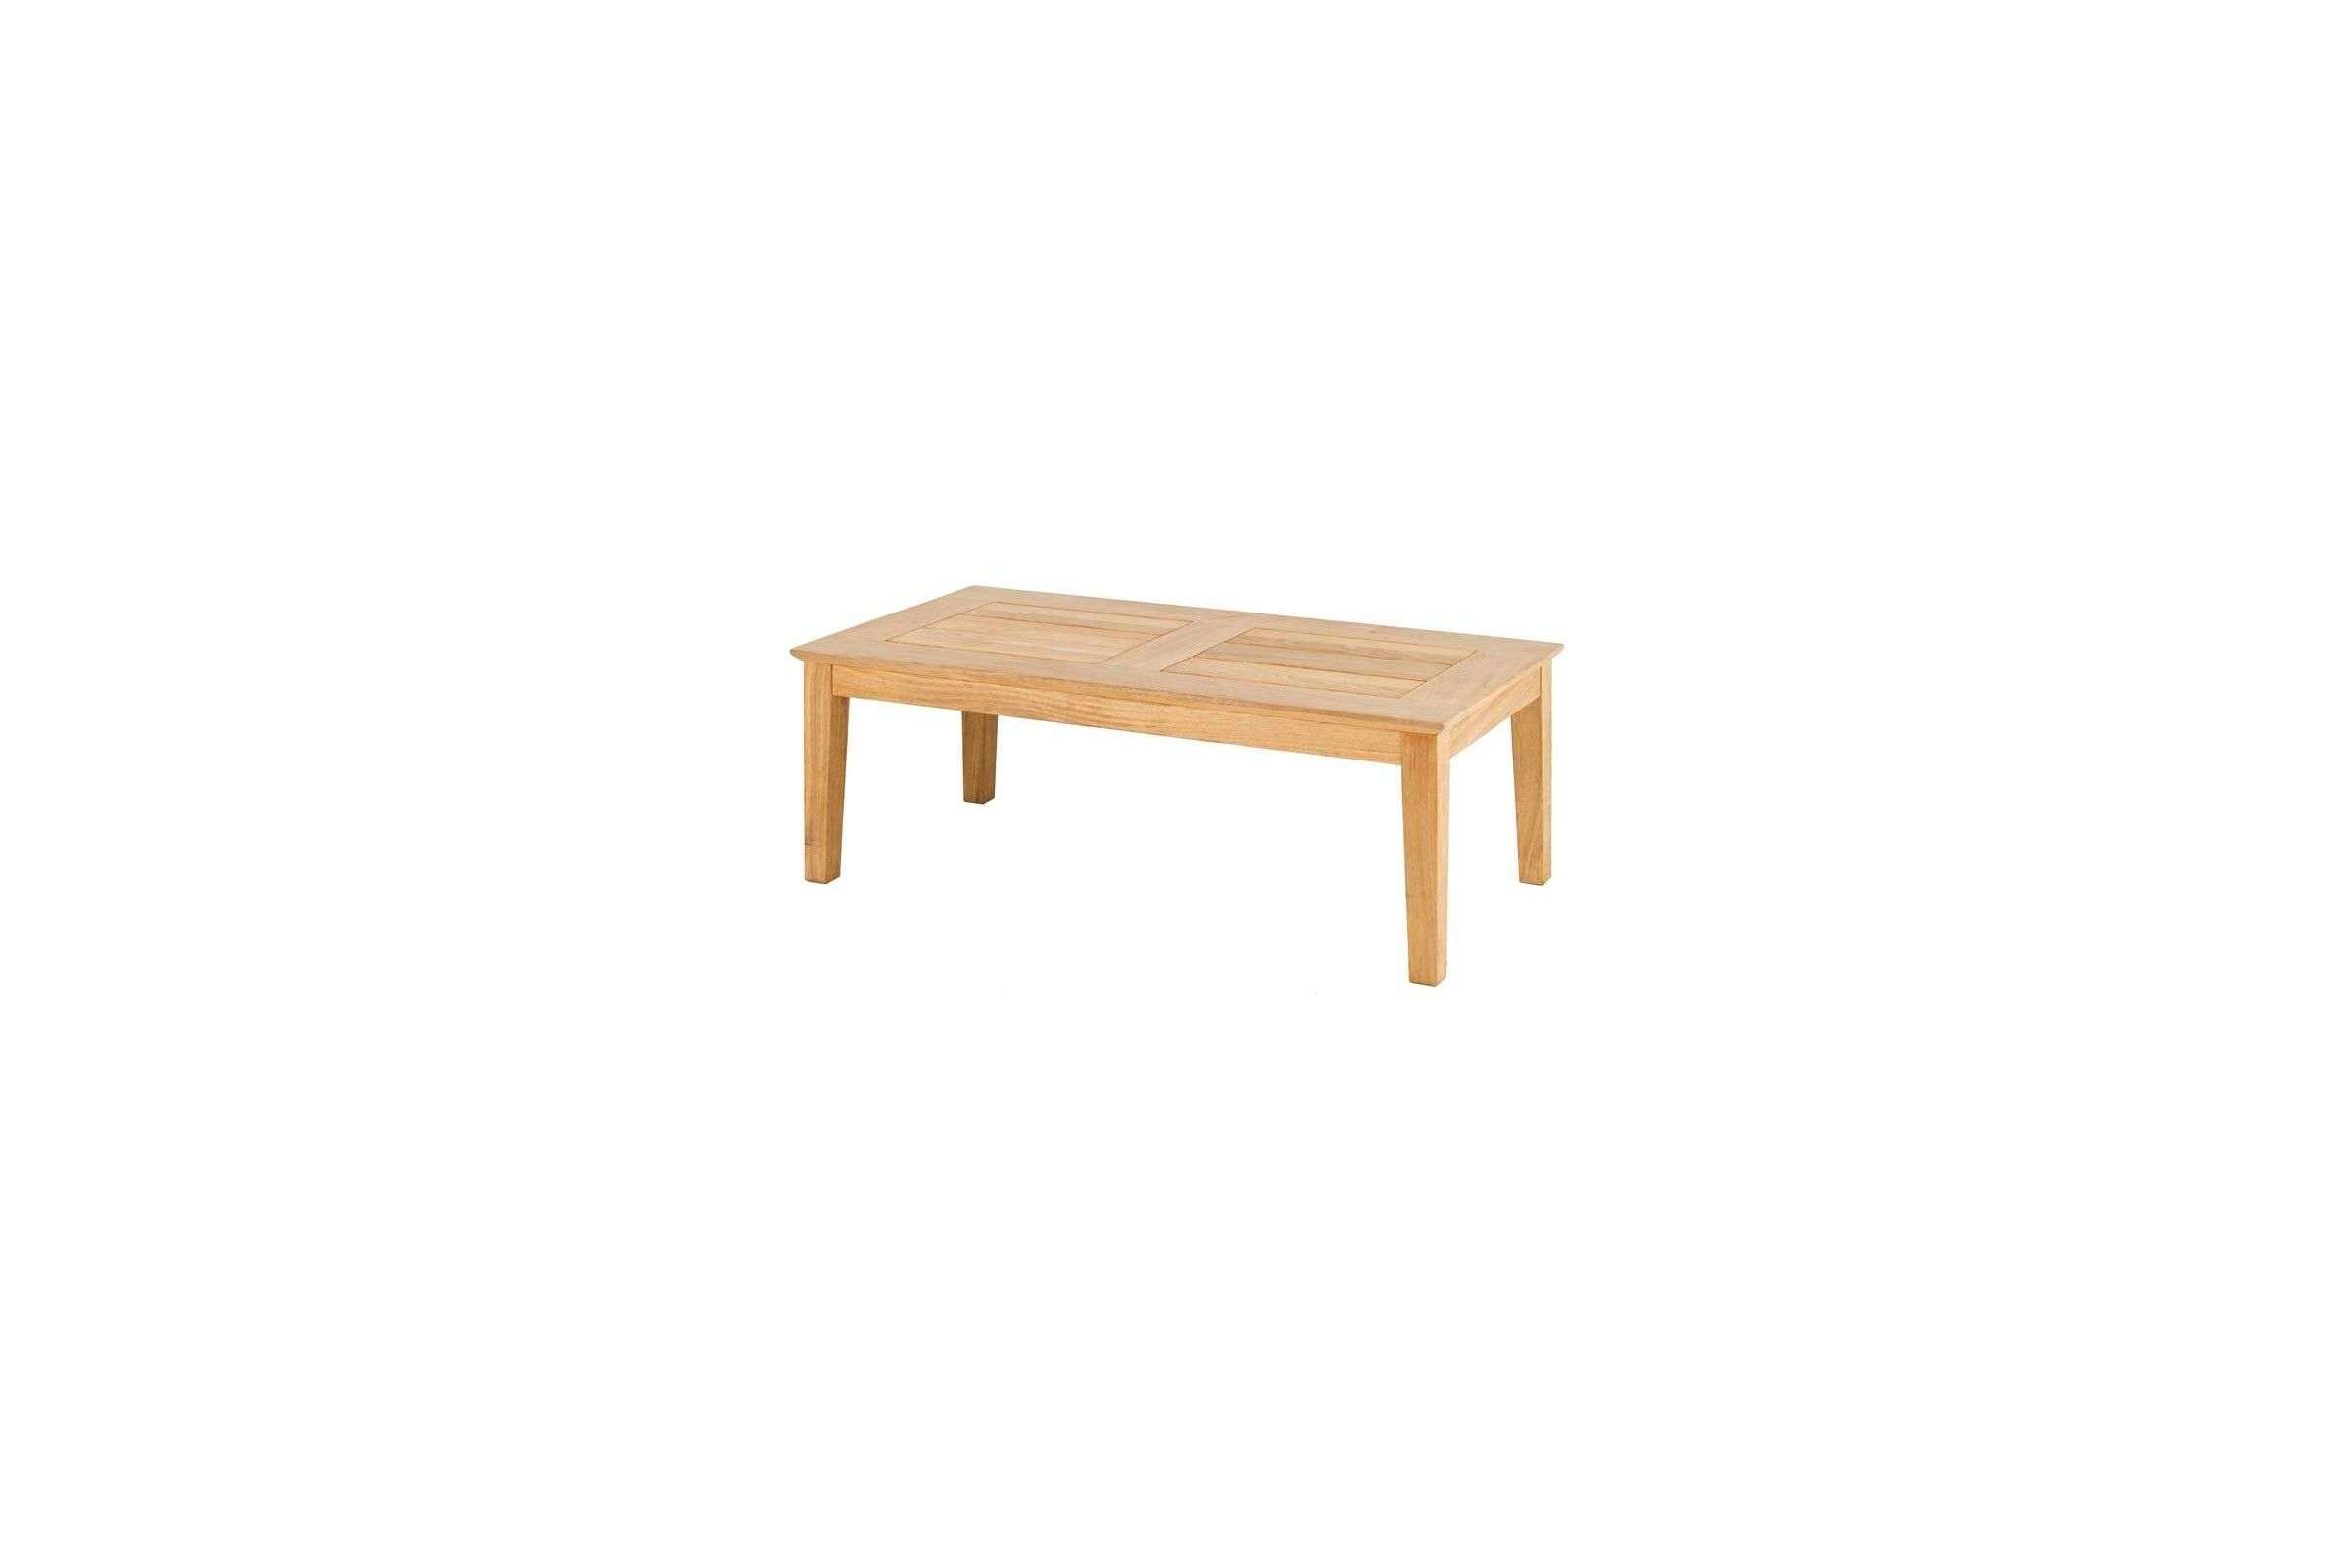 Table basse en bois pour salon de jardin 120 cm haut de for Table de salon en bois